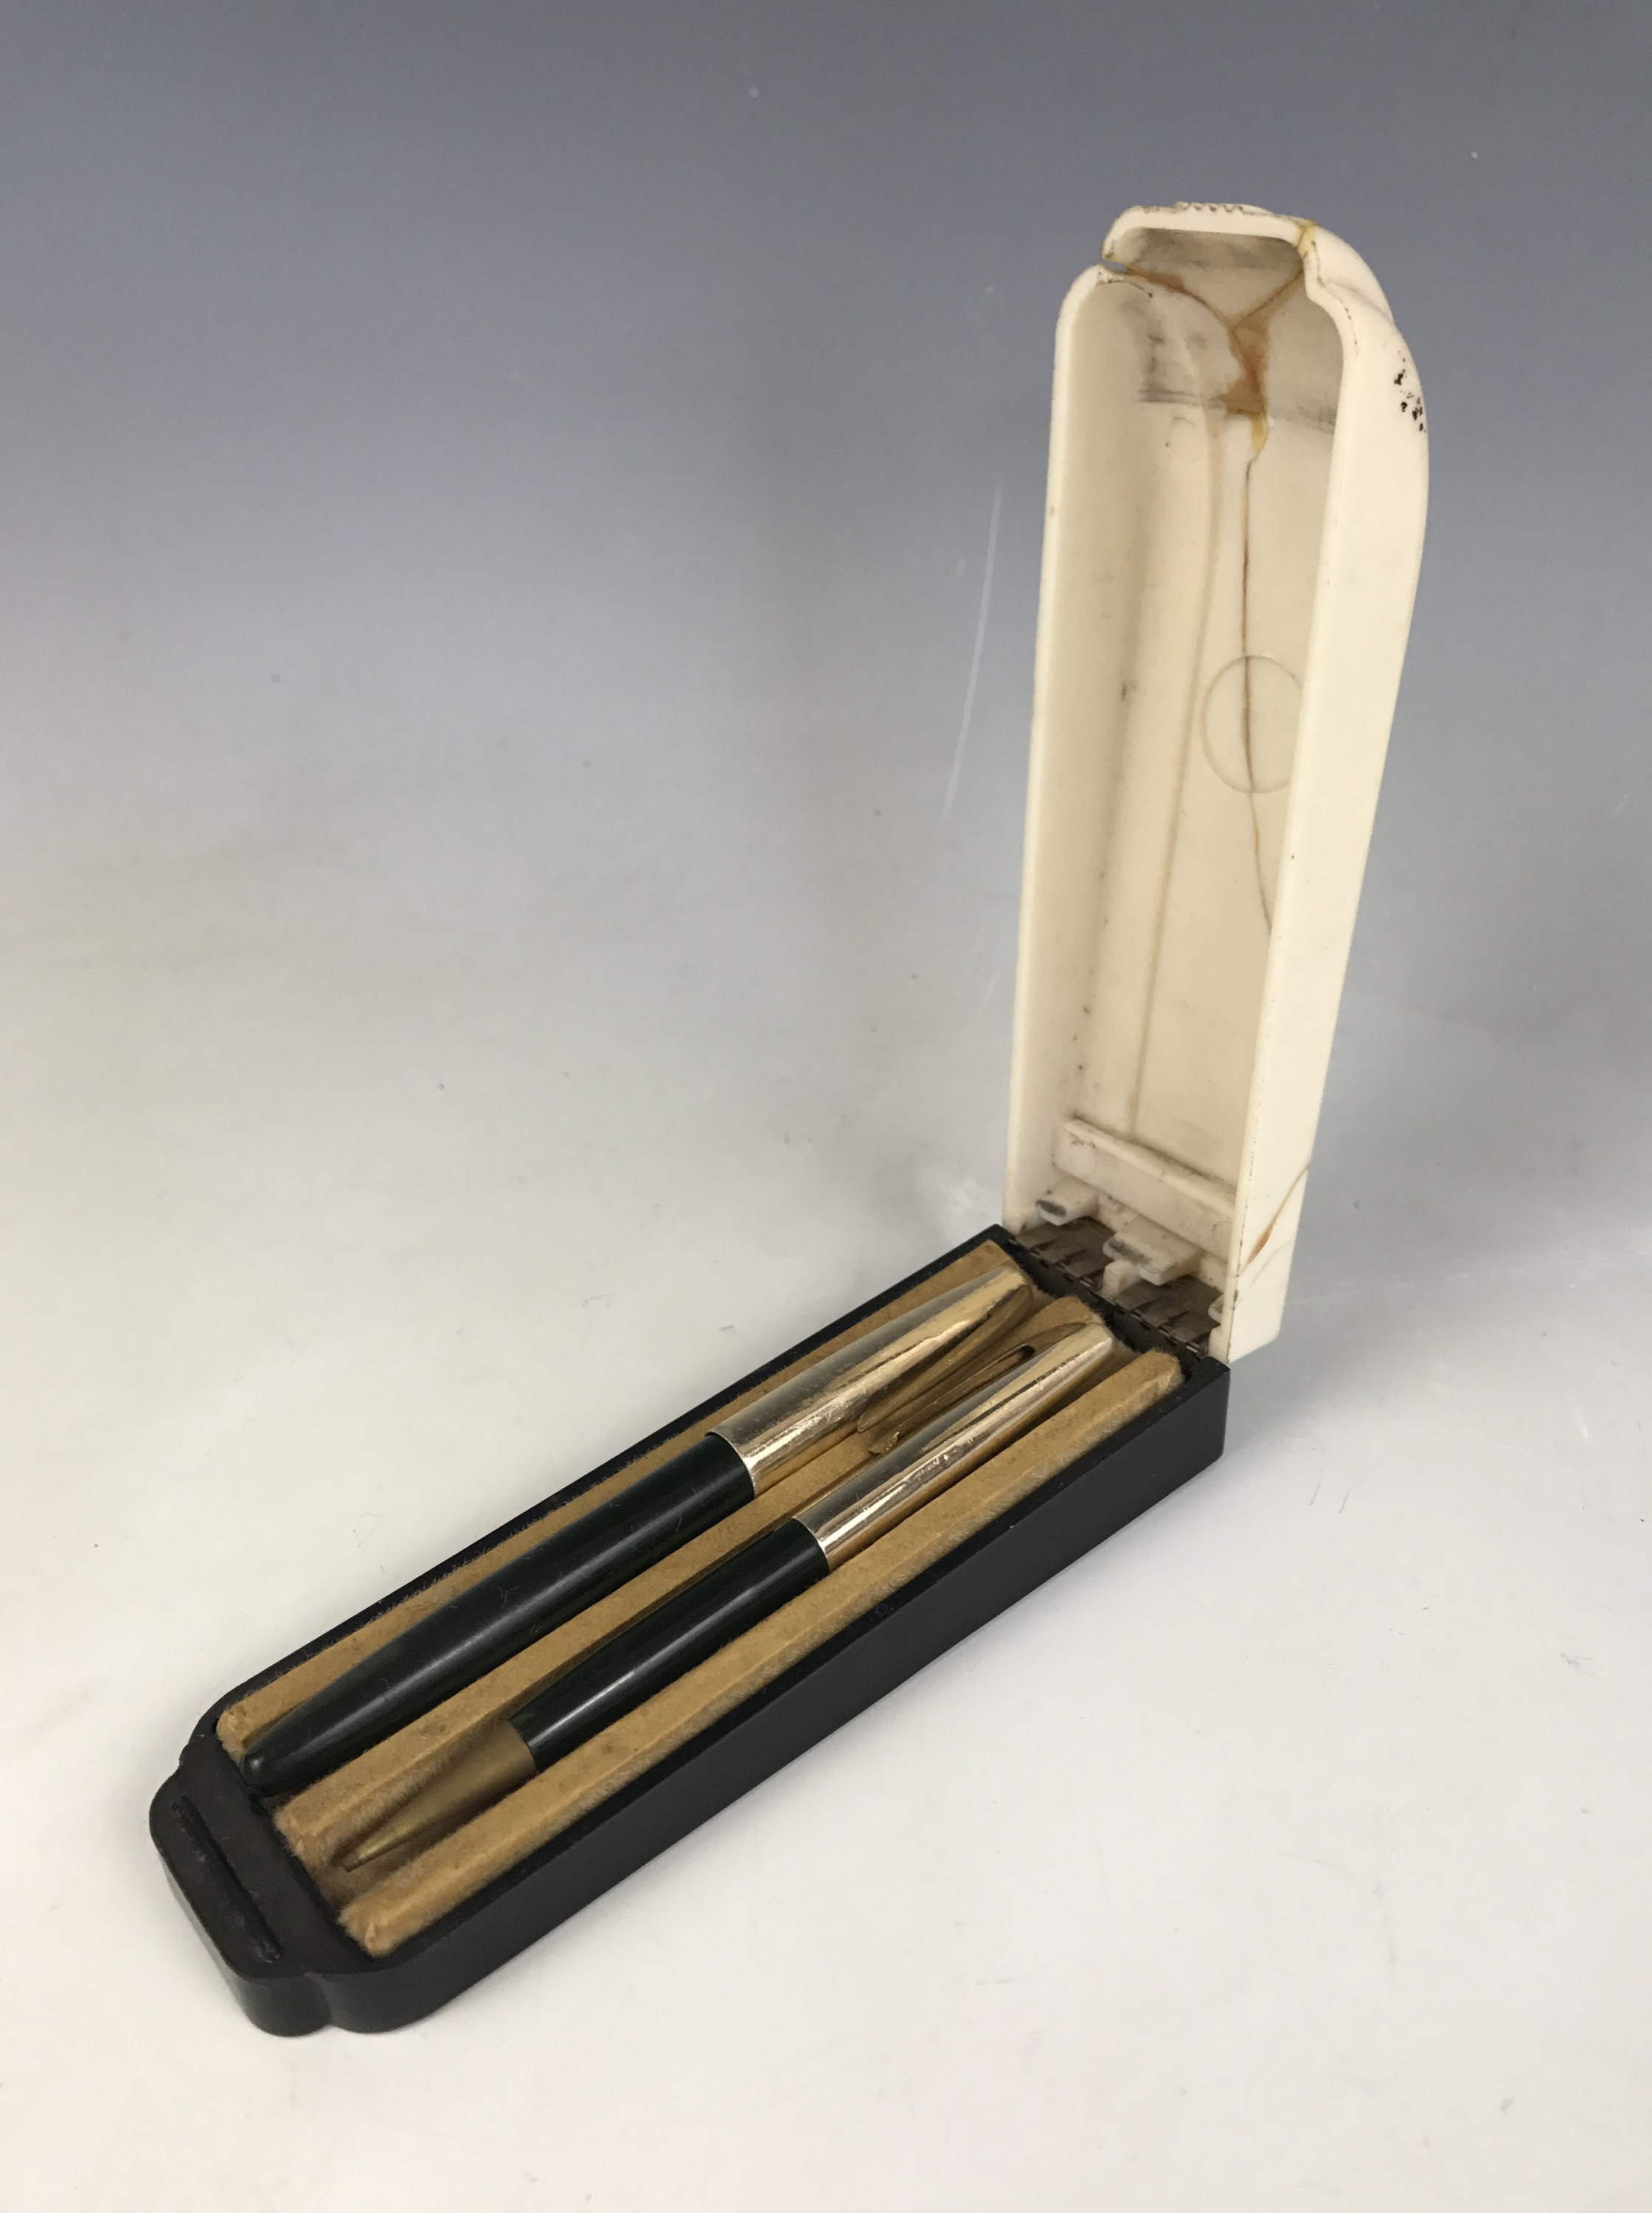 Lot 2 - A cased Wyvern 404 fountain pen and pencil set, in green